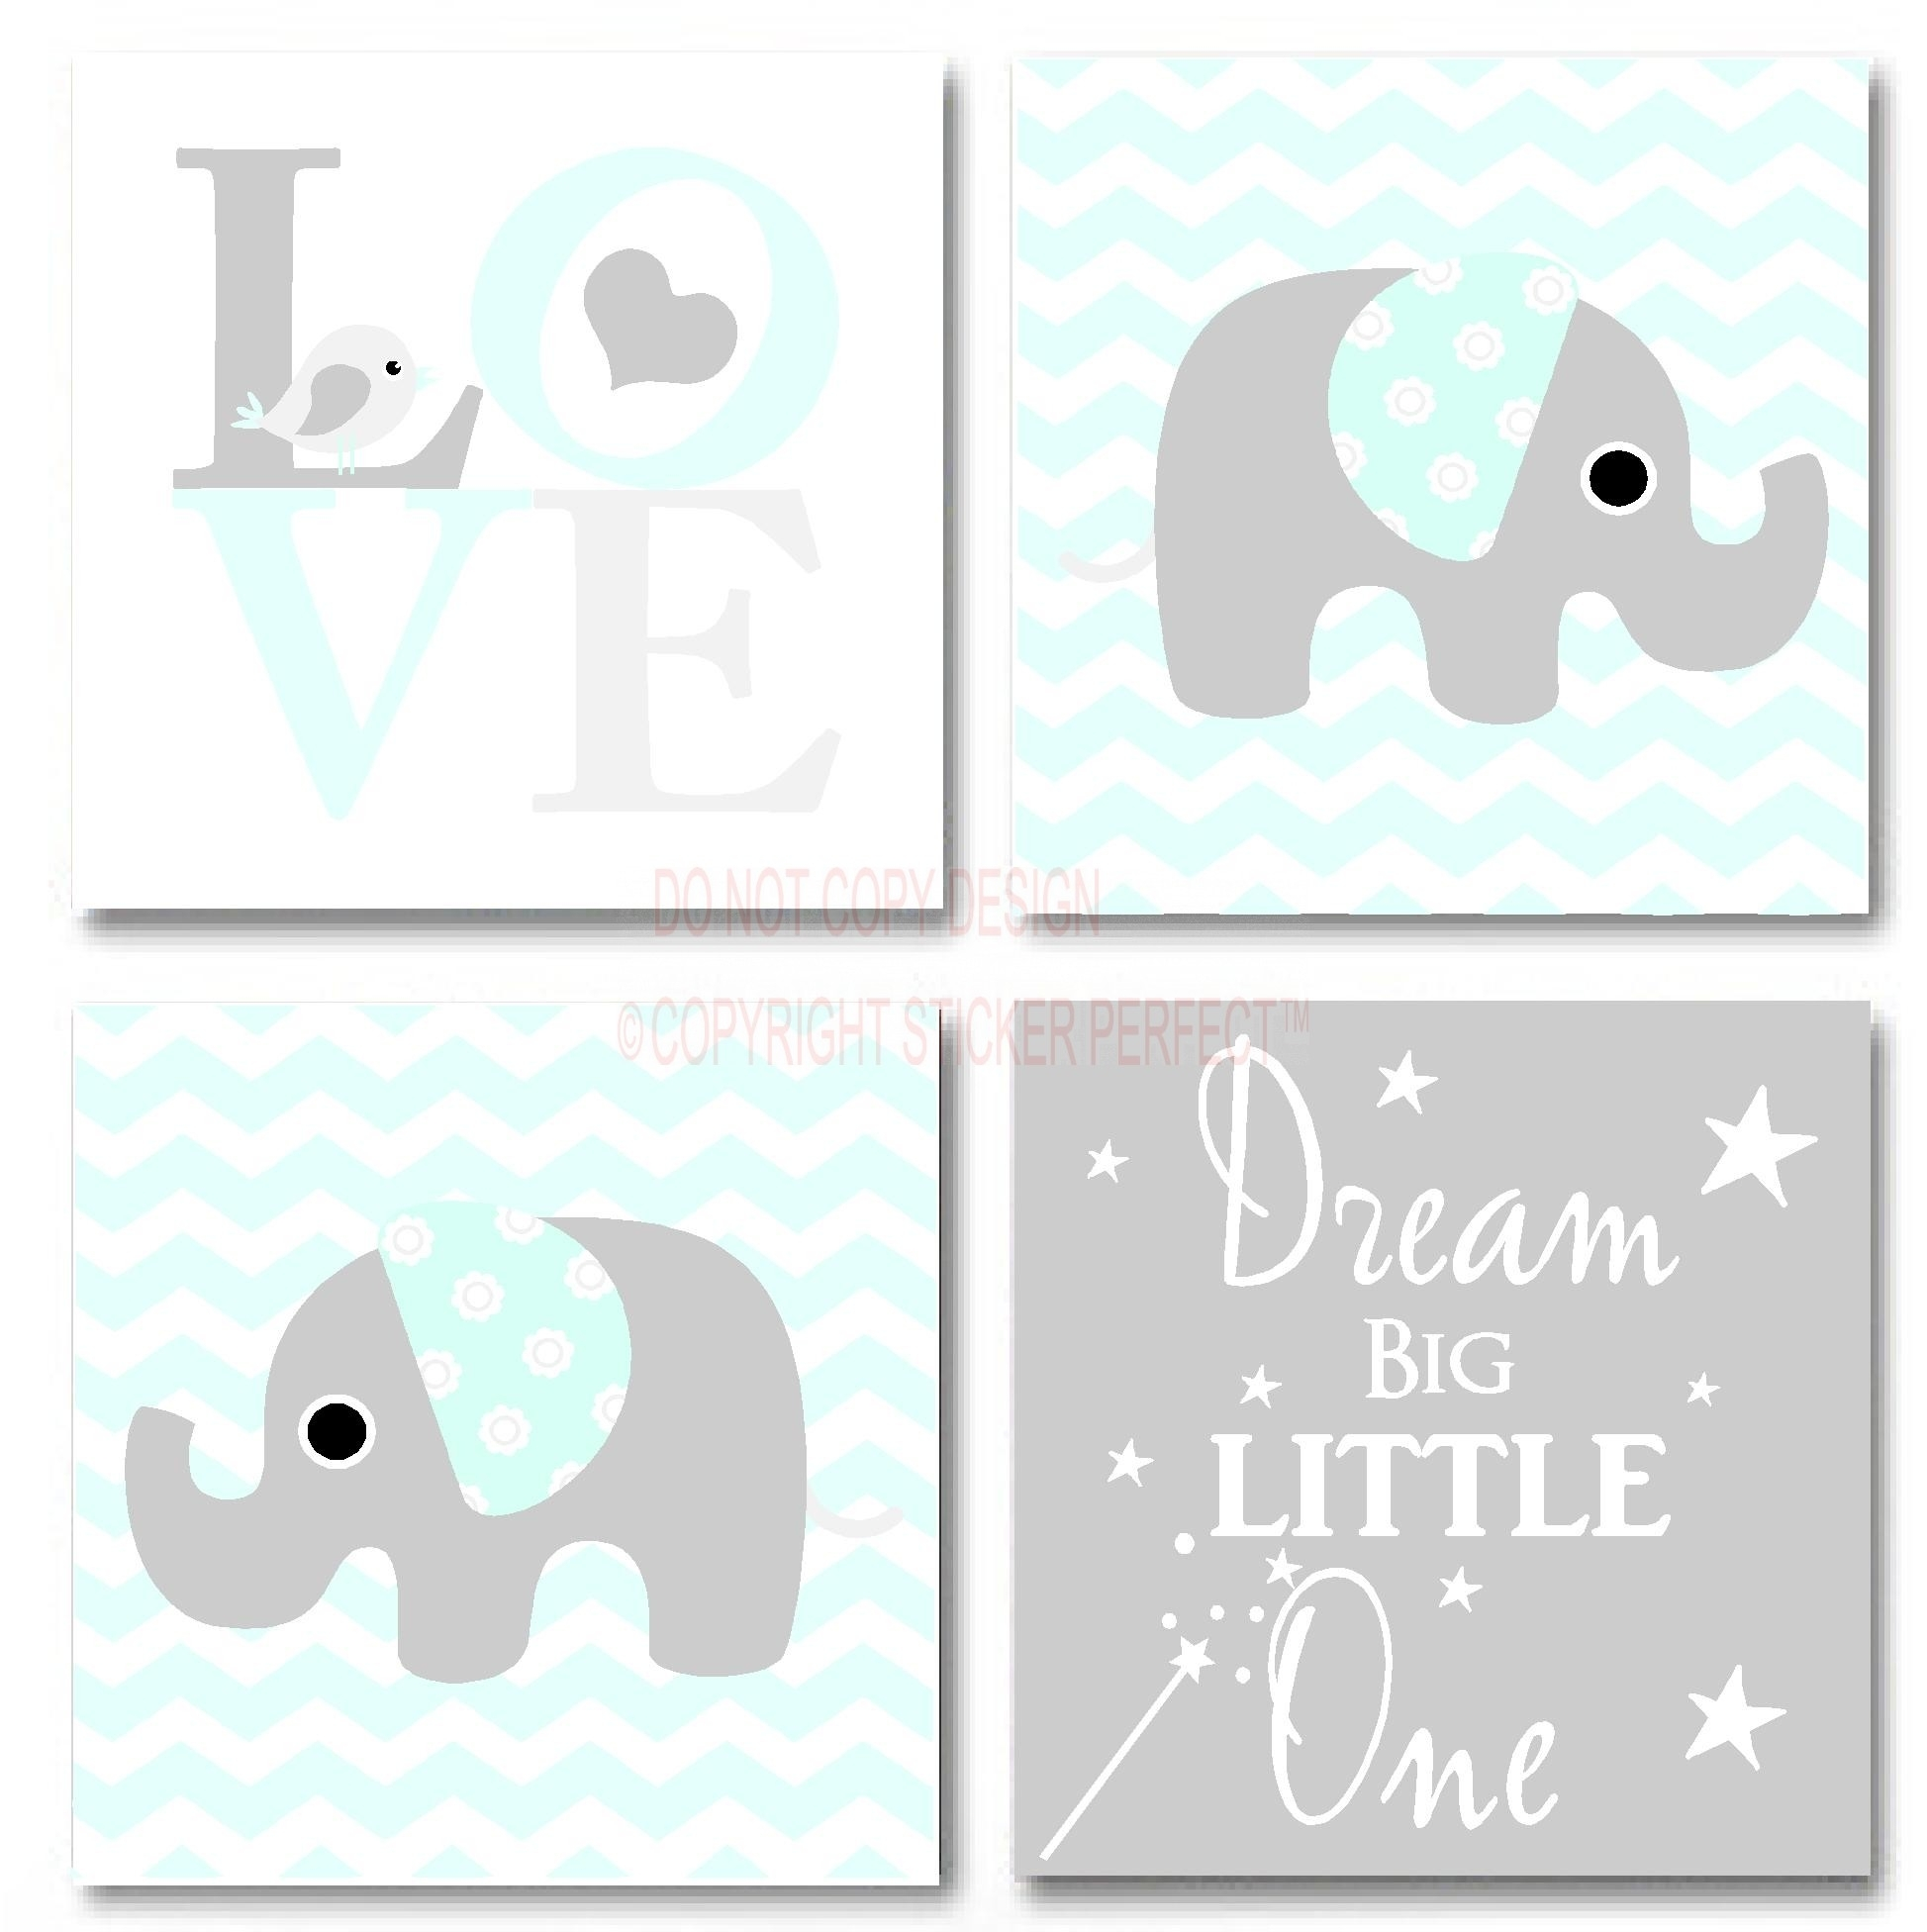 Framed Canvas Print Love 4 Piece Set Cute Elephant Bird With Latest Inspirational Wall Art Canvas (View 8 of 15)